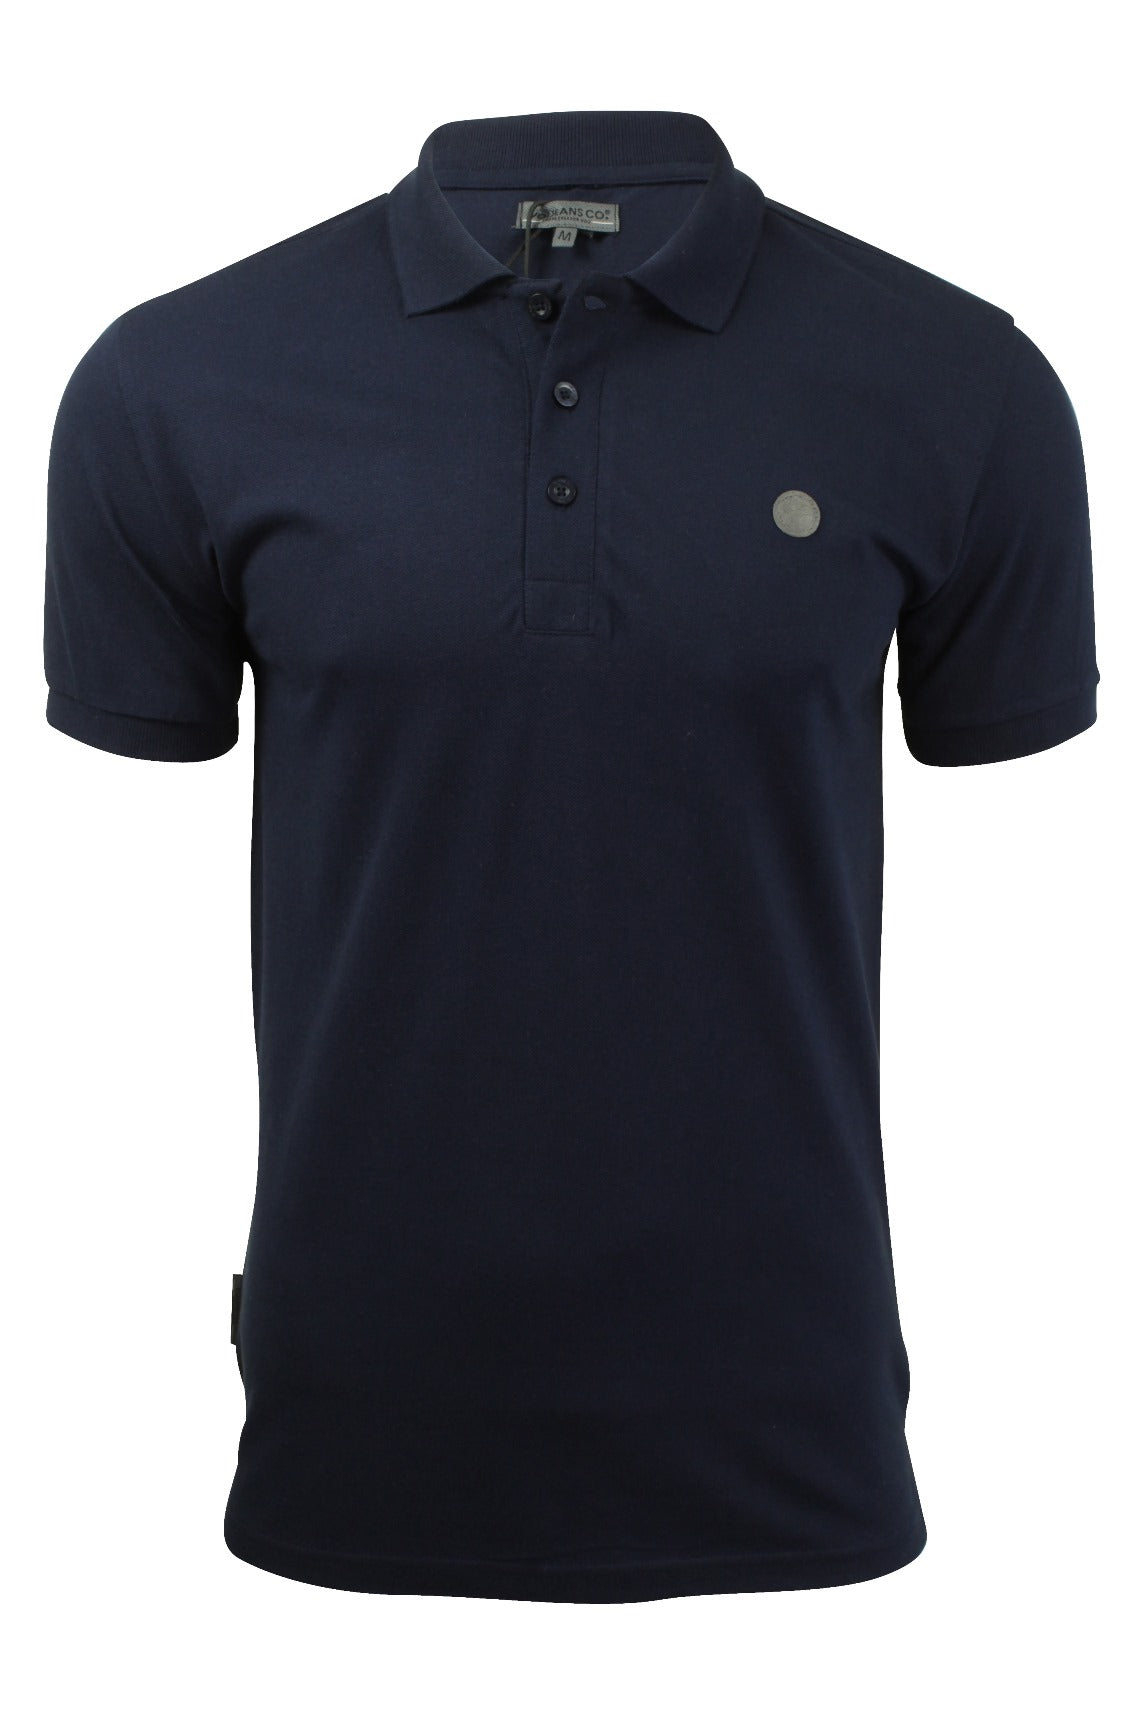 Mens Polo T-Shirt by Voi Jeans 'Redford' Short Sleeved-Main Image